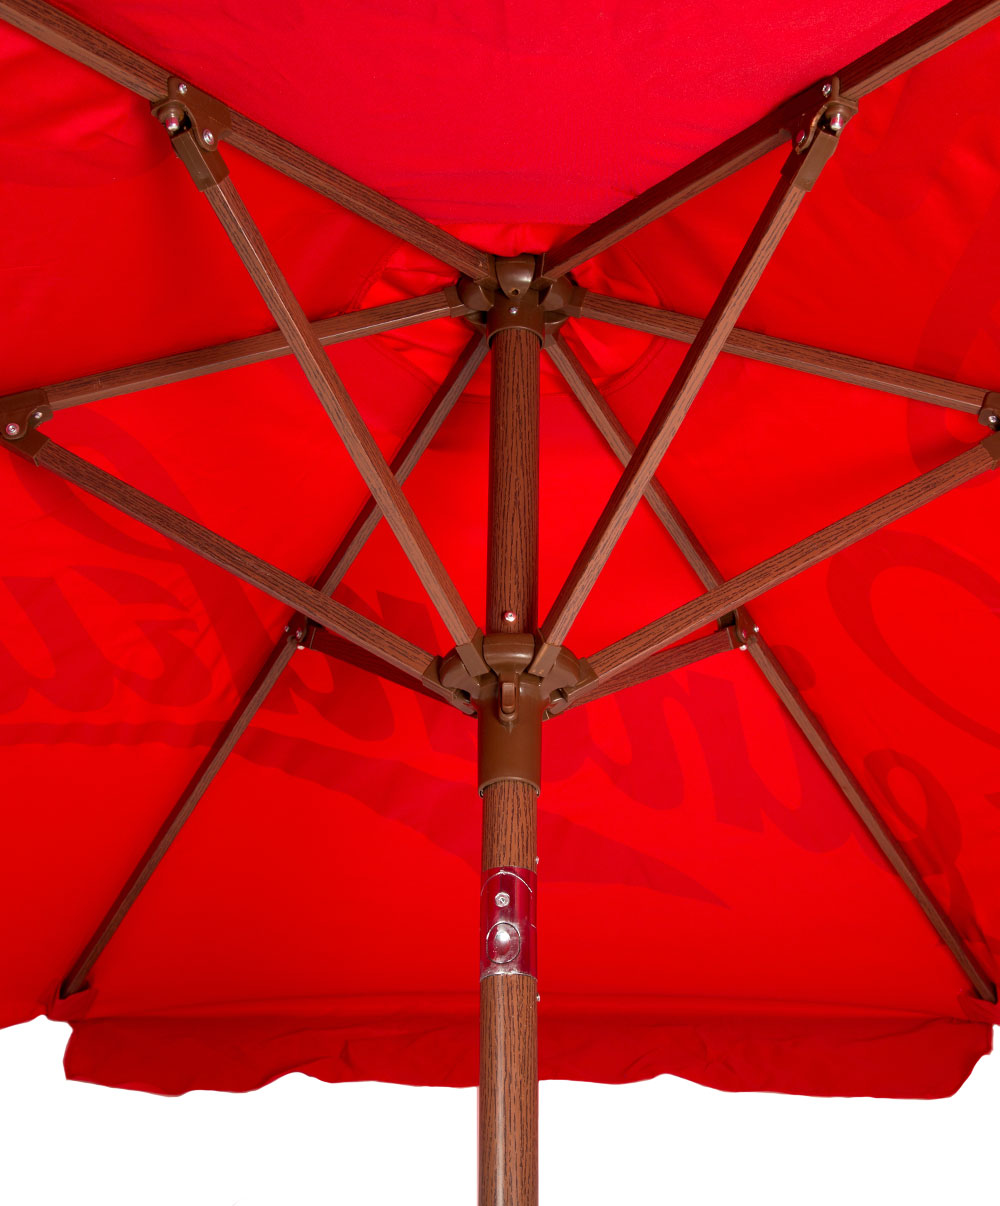 PHONETIC MARKET PATIO UMBRELLA